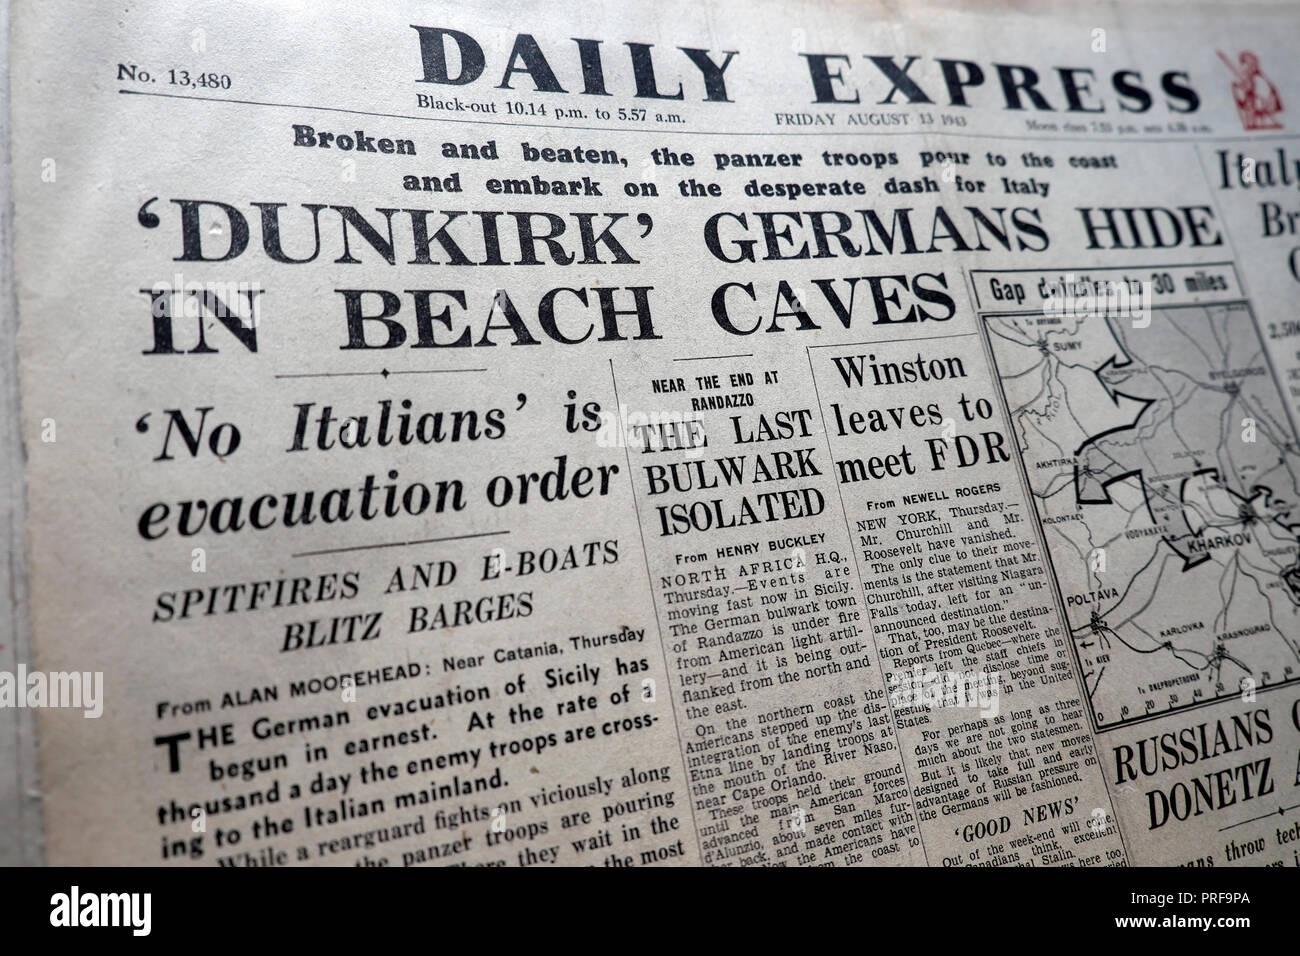 Front page headlines of the Daily Express newspaper